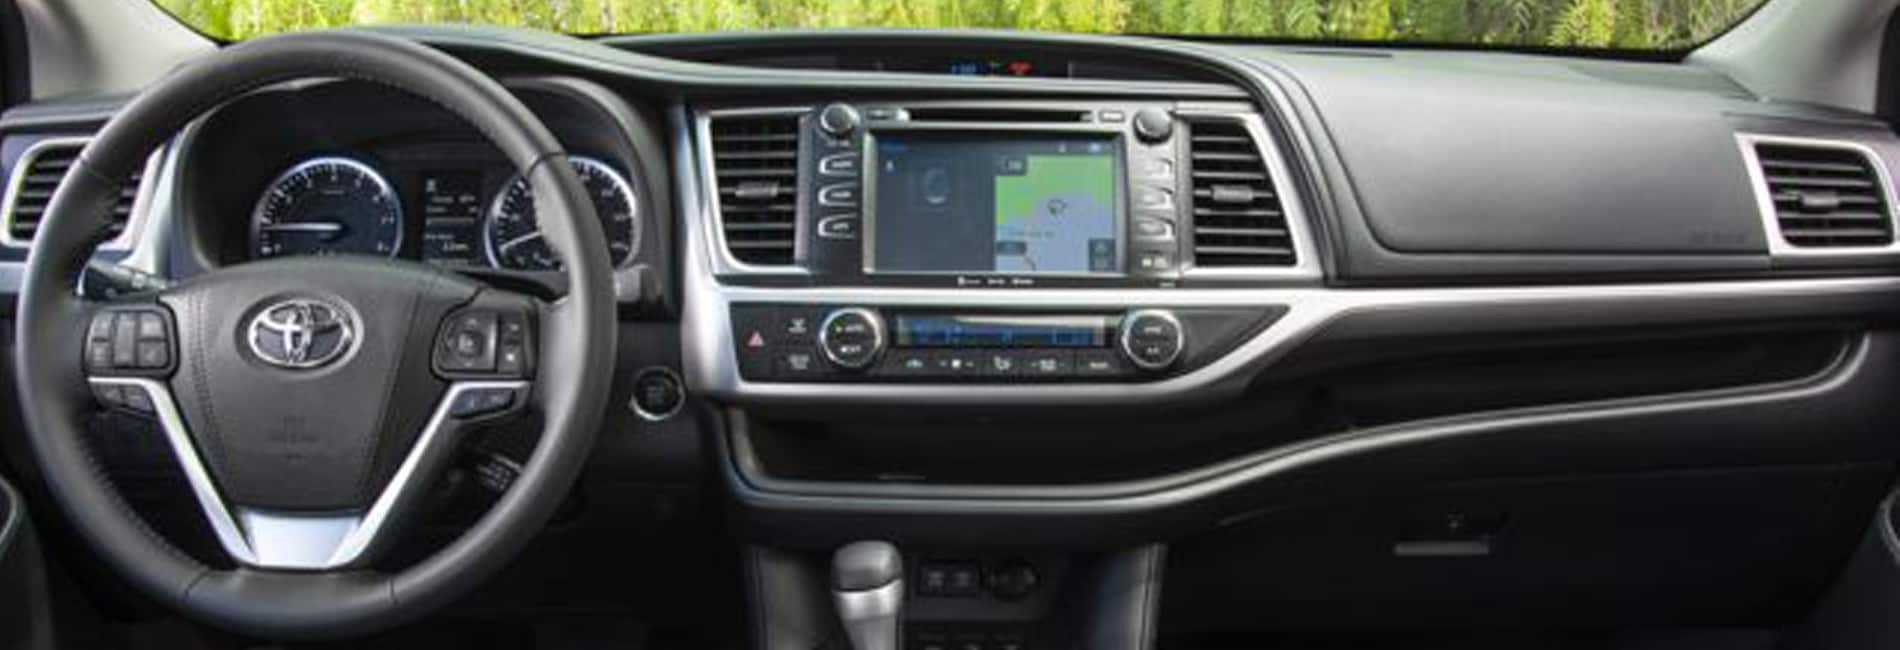 2019 Toyota Highlander Interior Vehicle Features